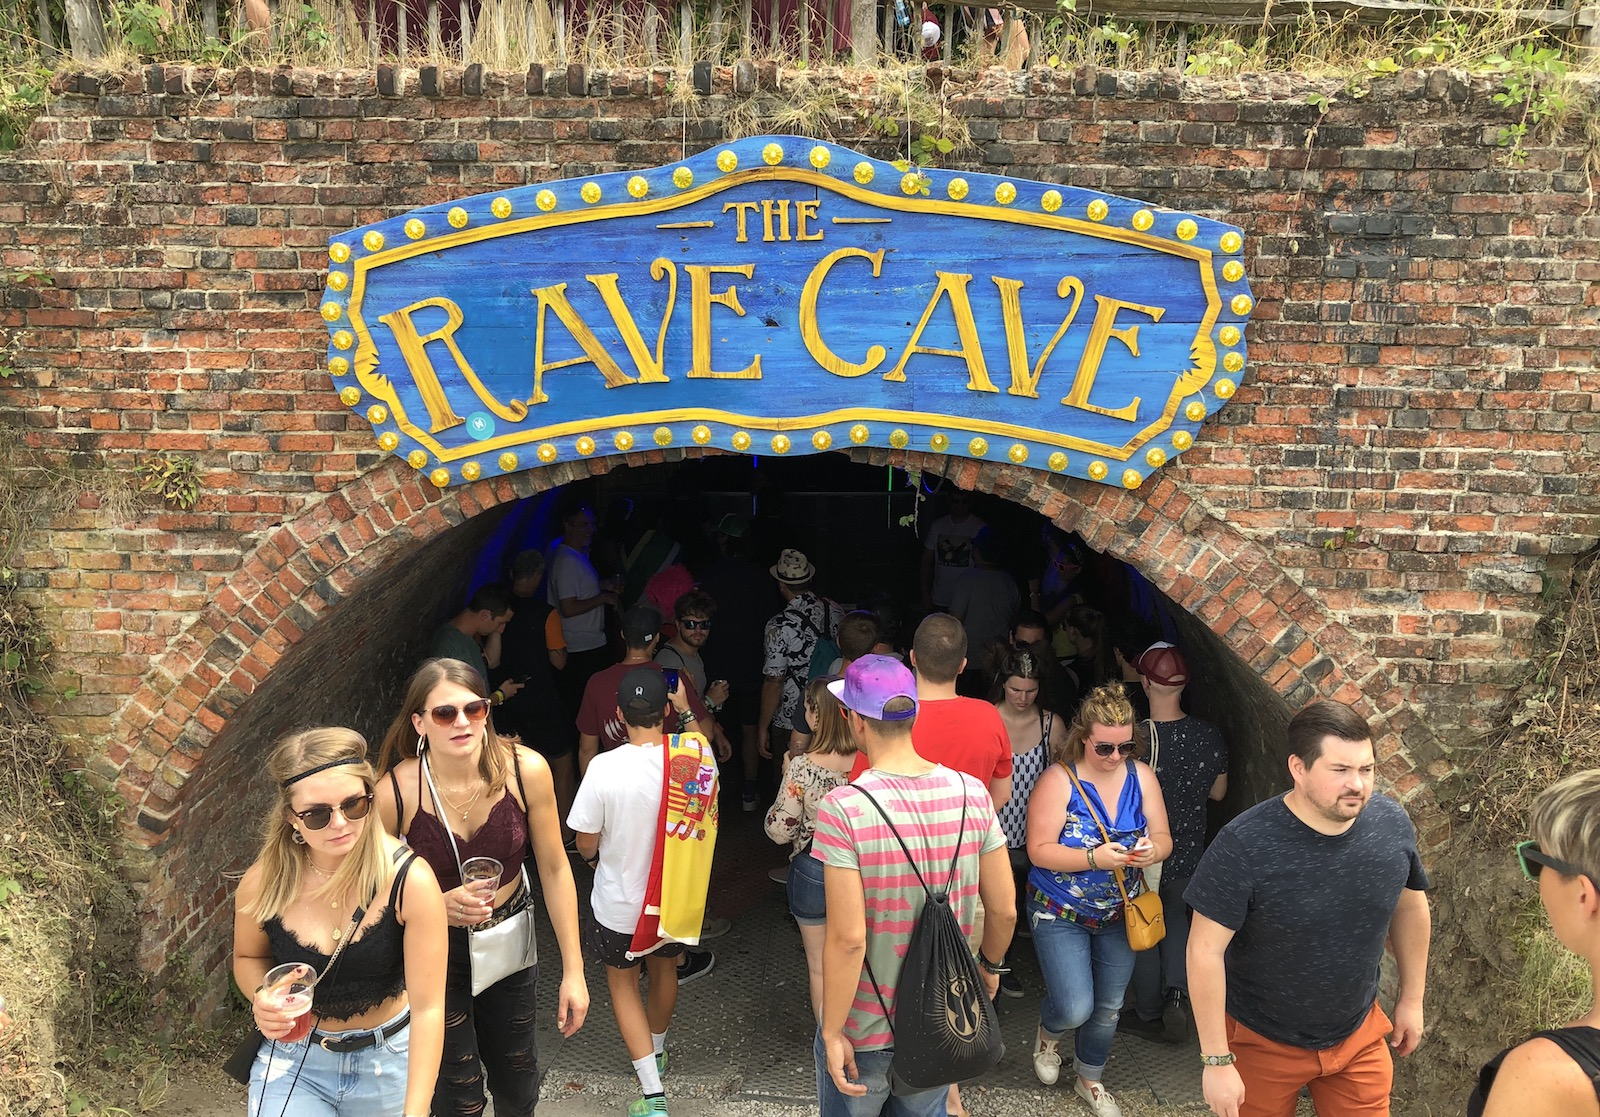 Rave Cave